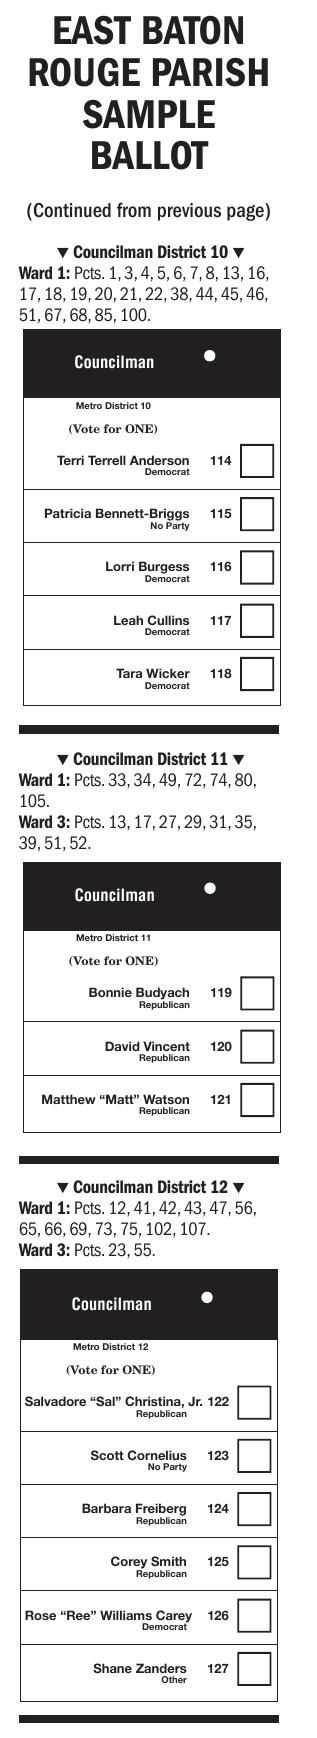 Sample Ballot (Page 2)